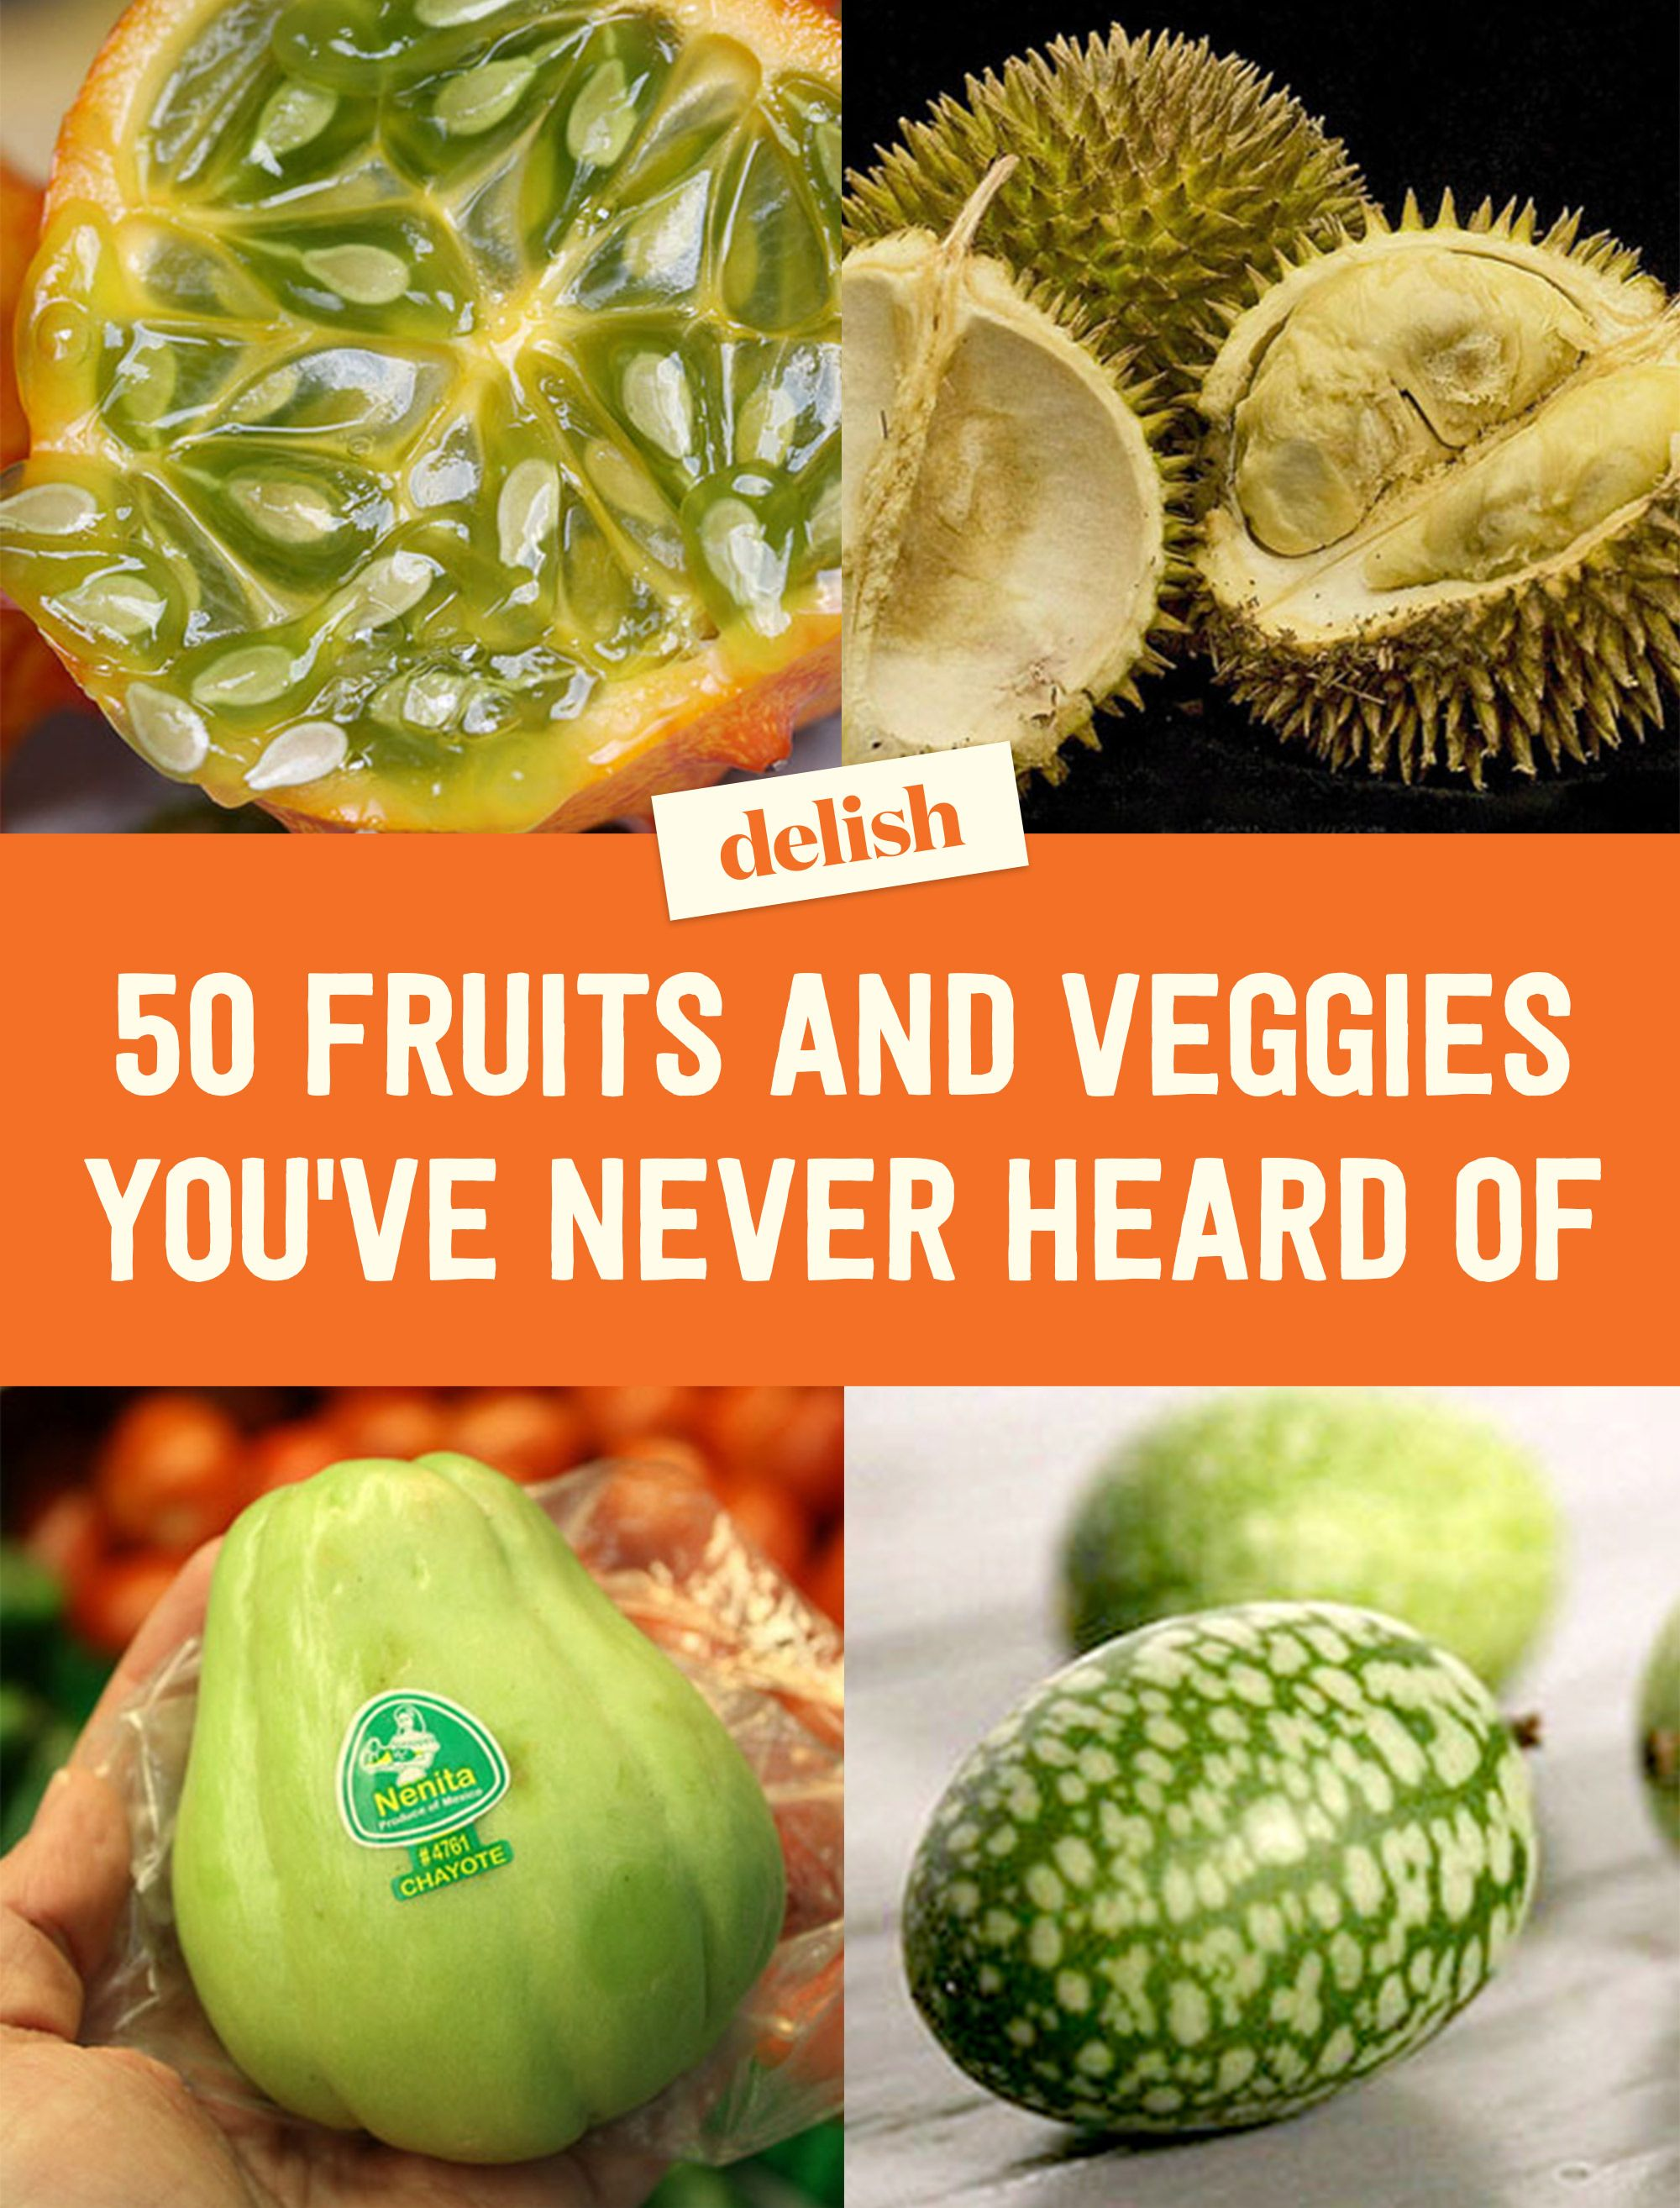 Exotic Fruits and Vegetables - Different Uncommon Fruits and